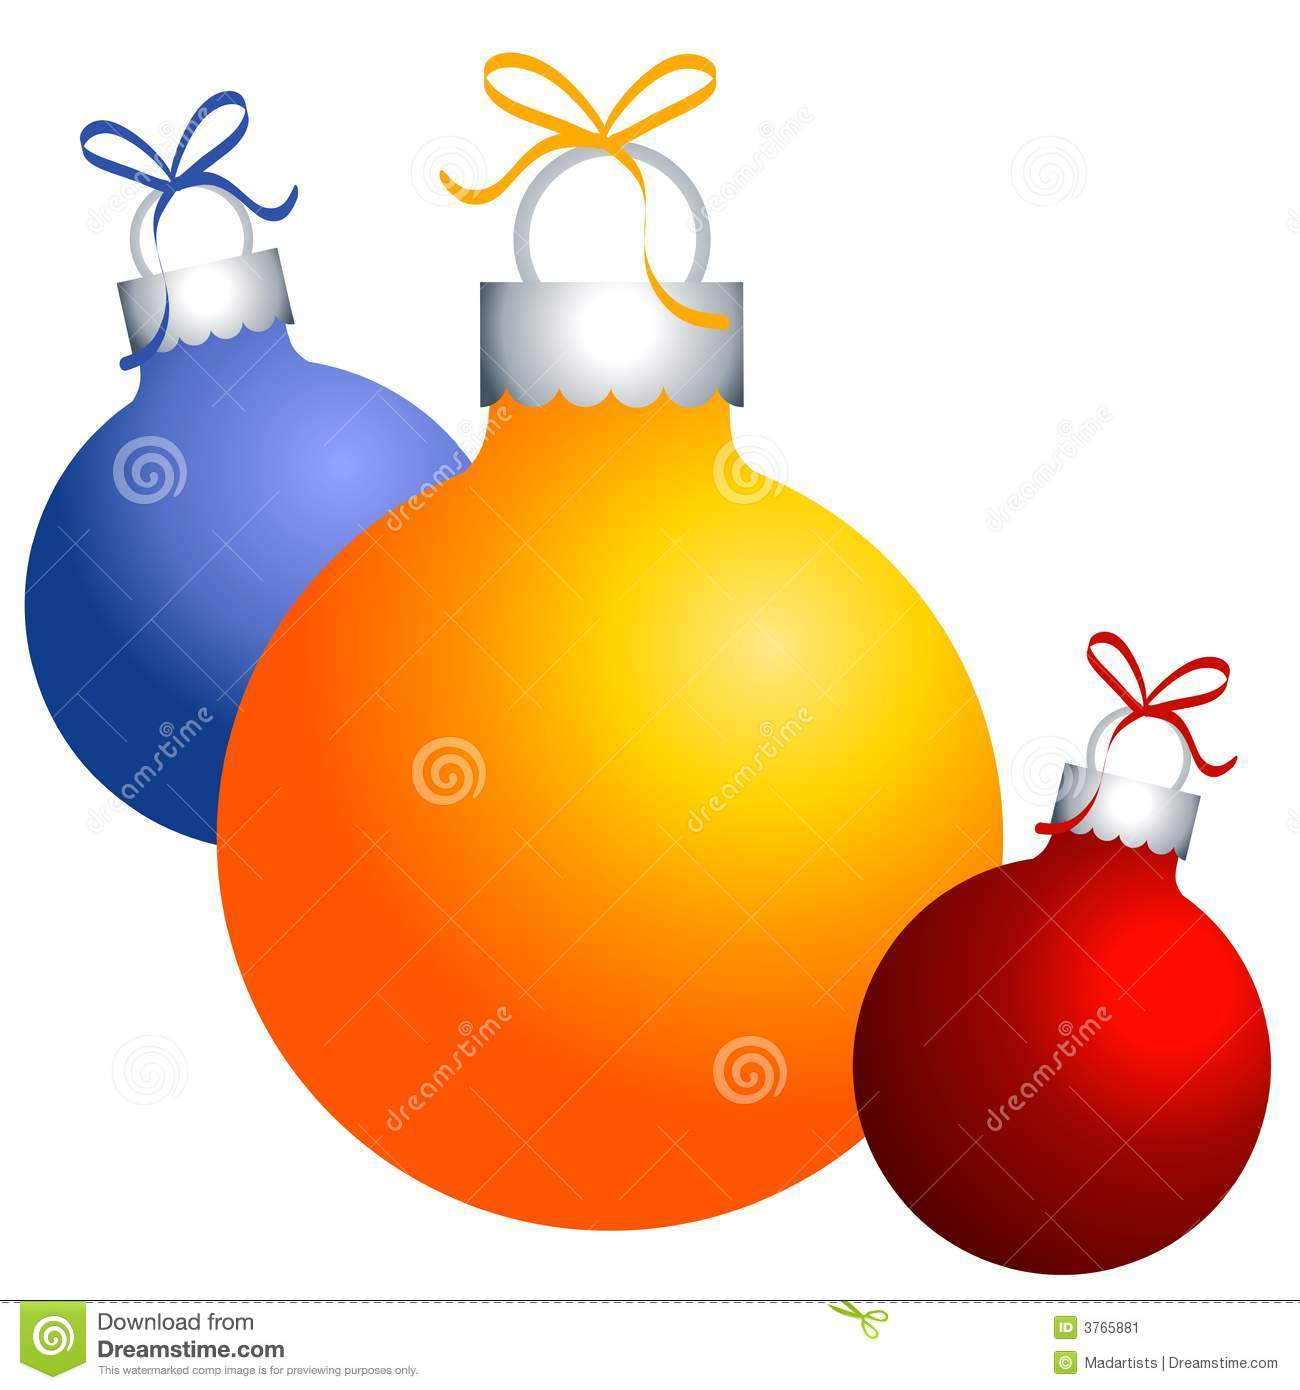 christmas ornaments clip art - Christmas Ornaments Clipart